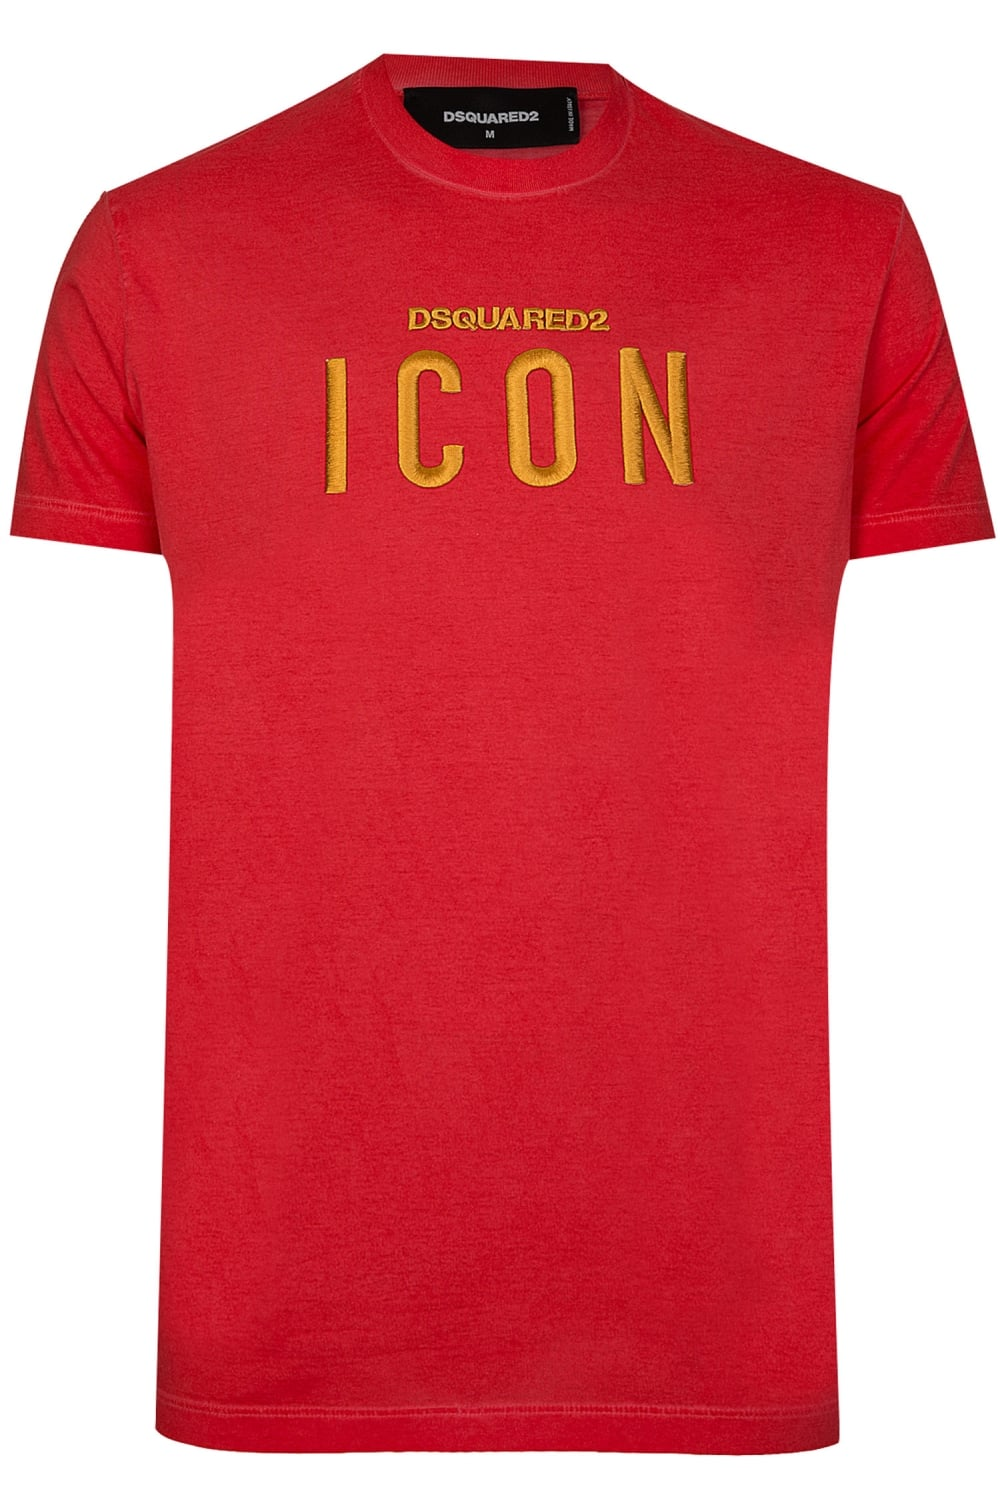 5c9854d96ab73e Dsquared Icon T-Shirt Red